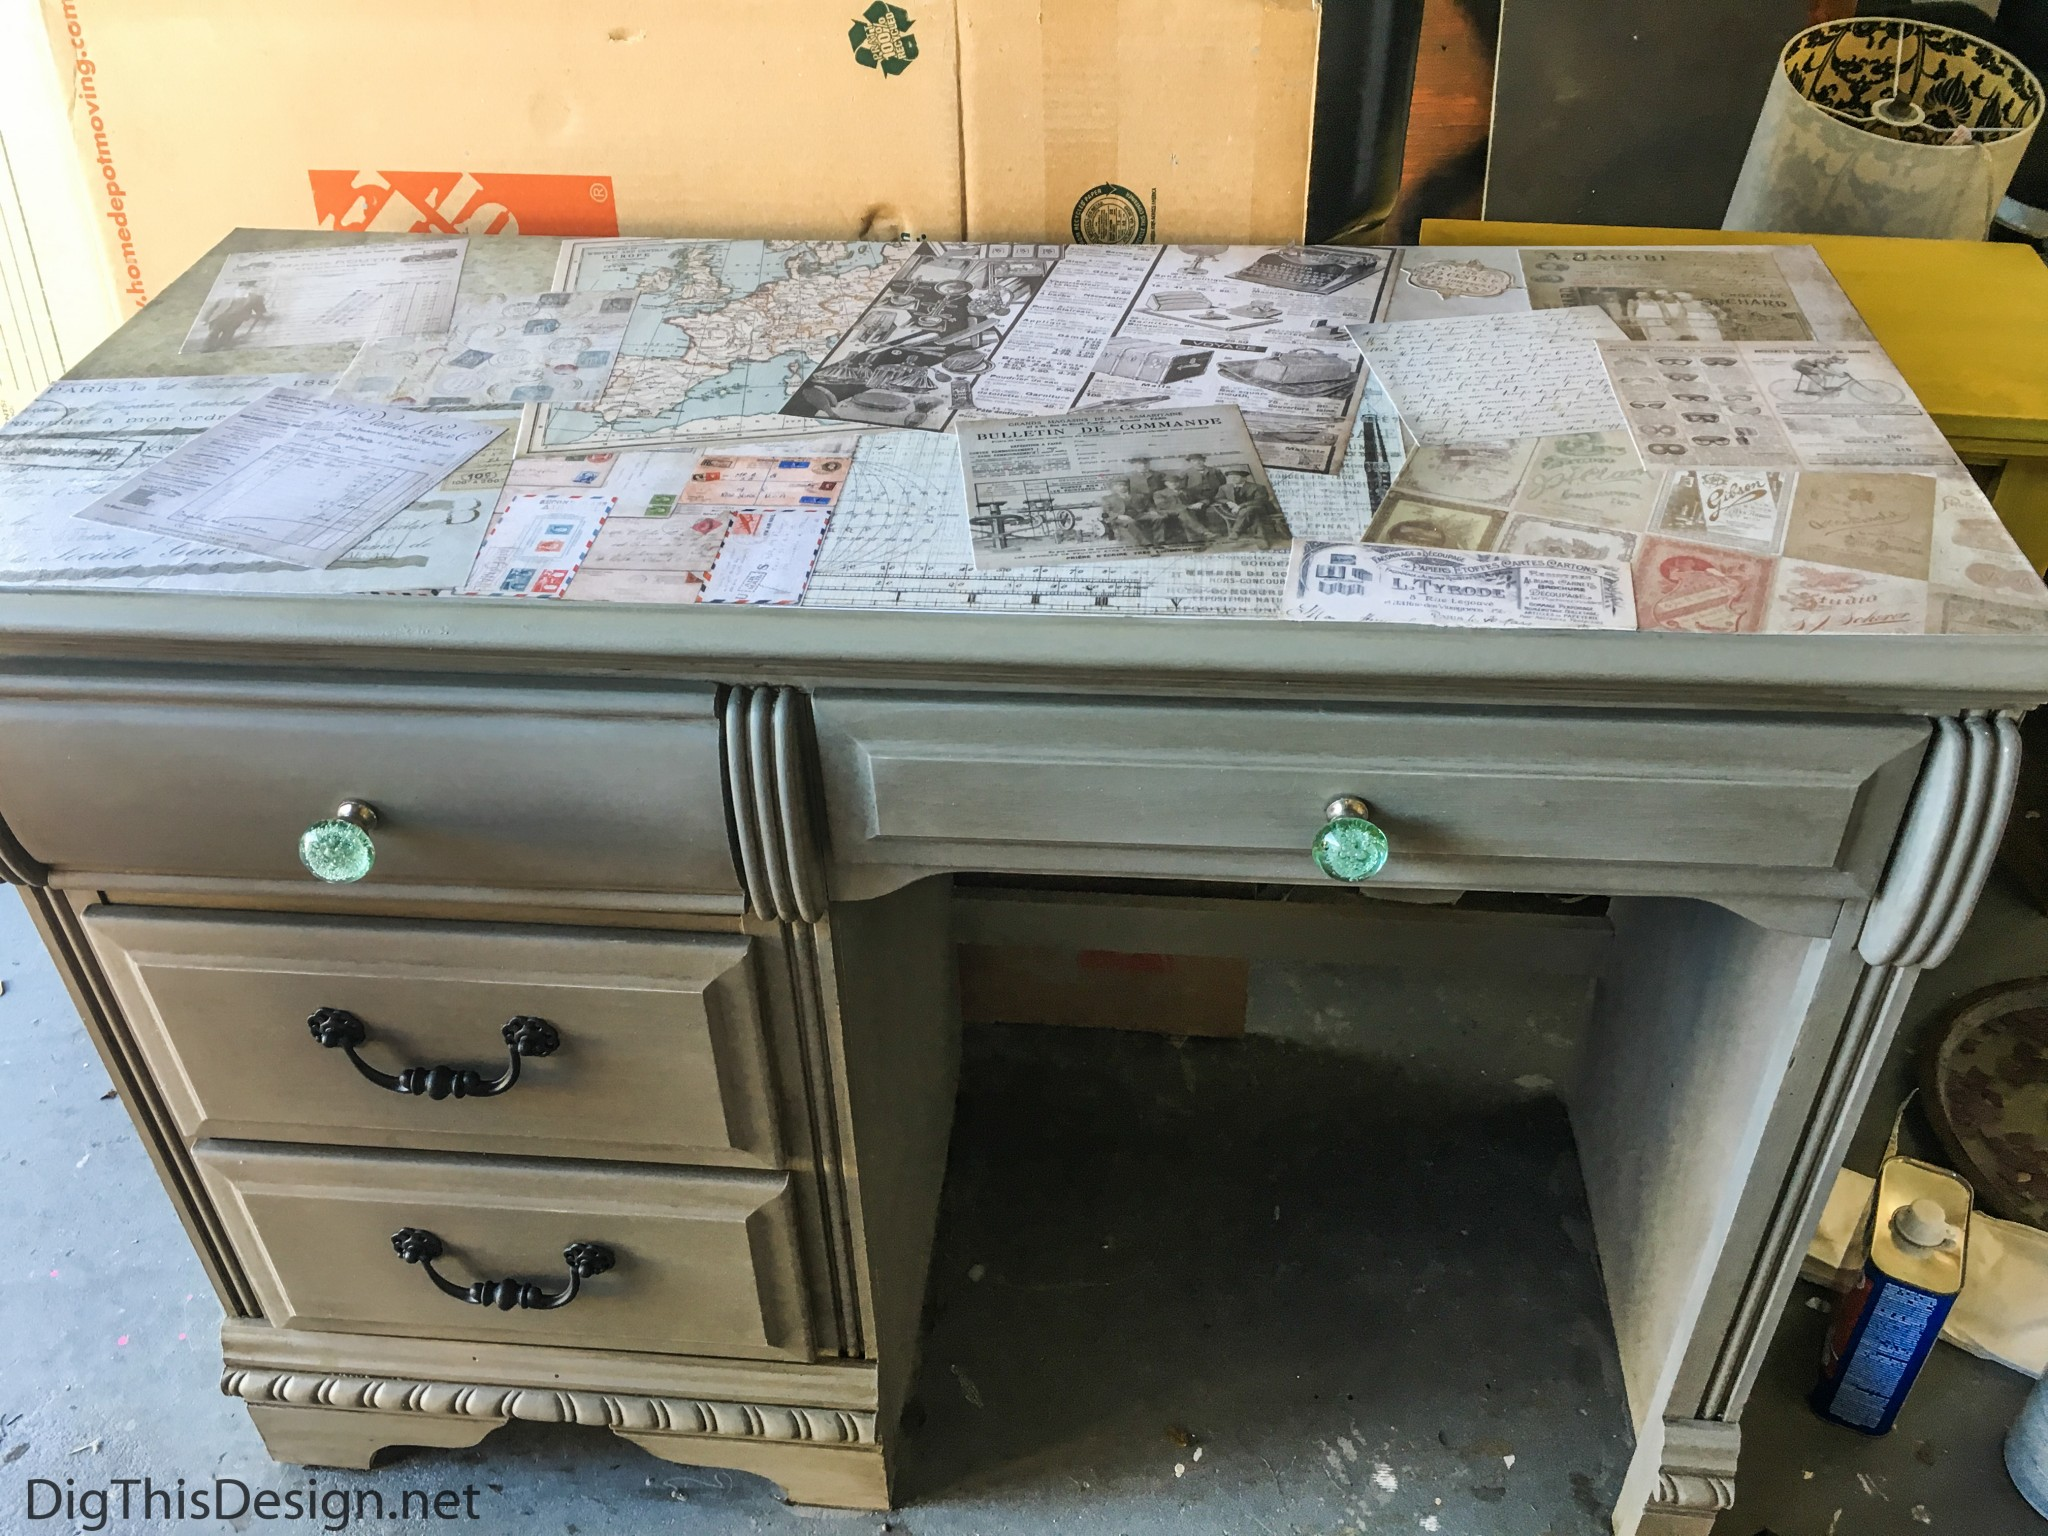 Refurbished Desktop Using Decoupage Medium Mod Podge Dig